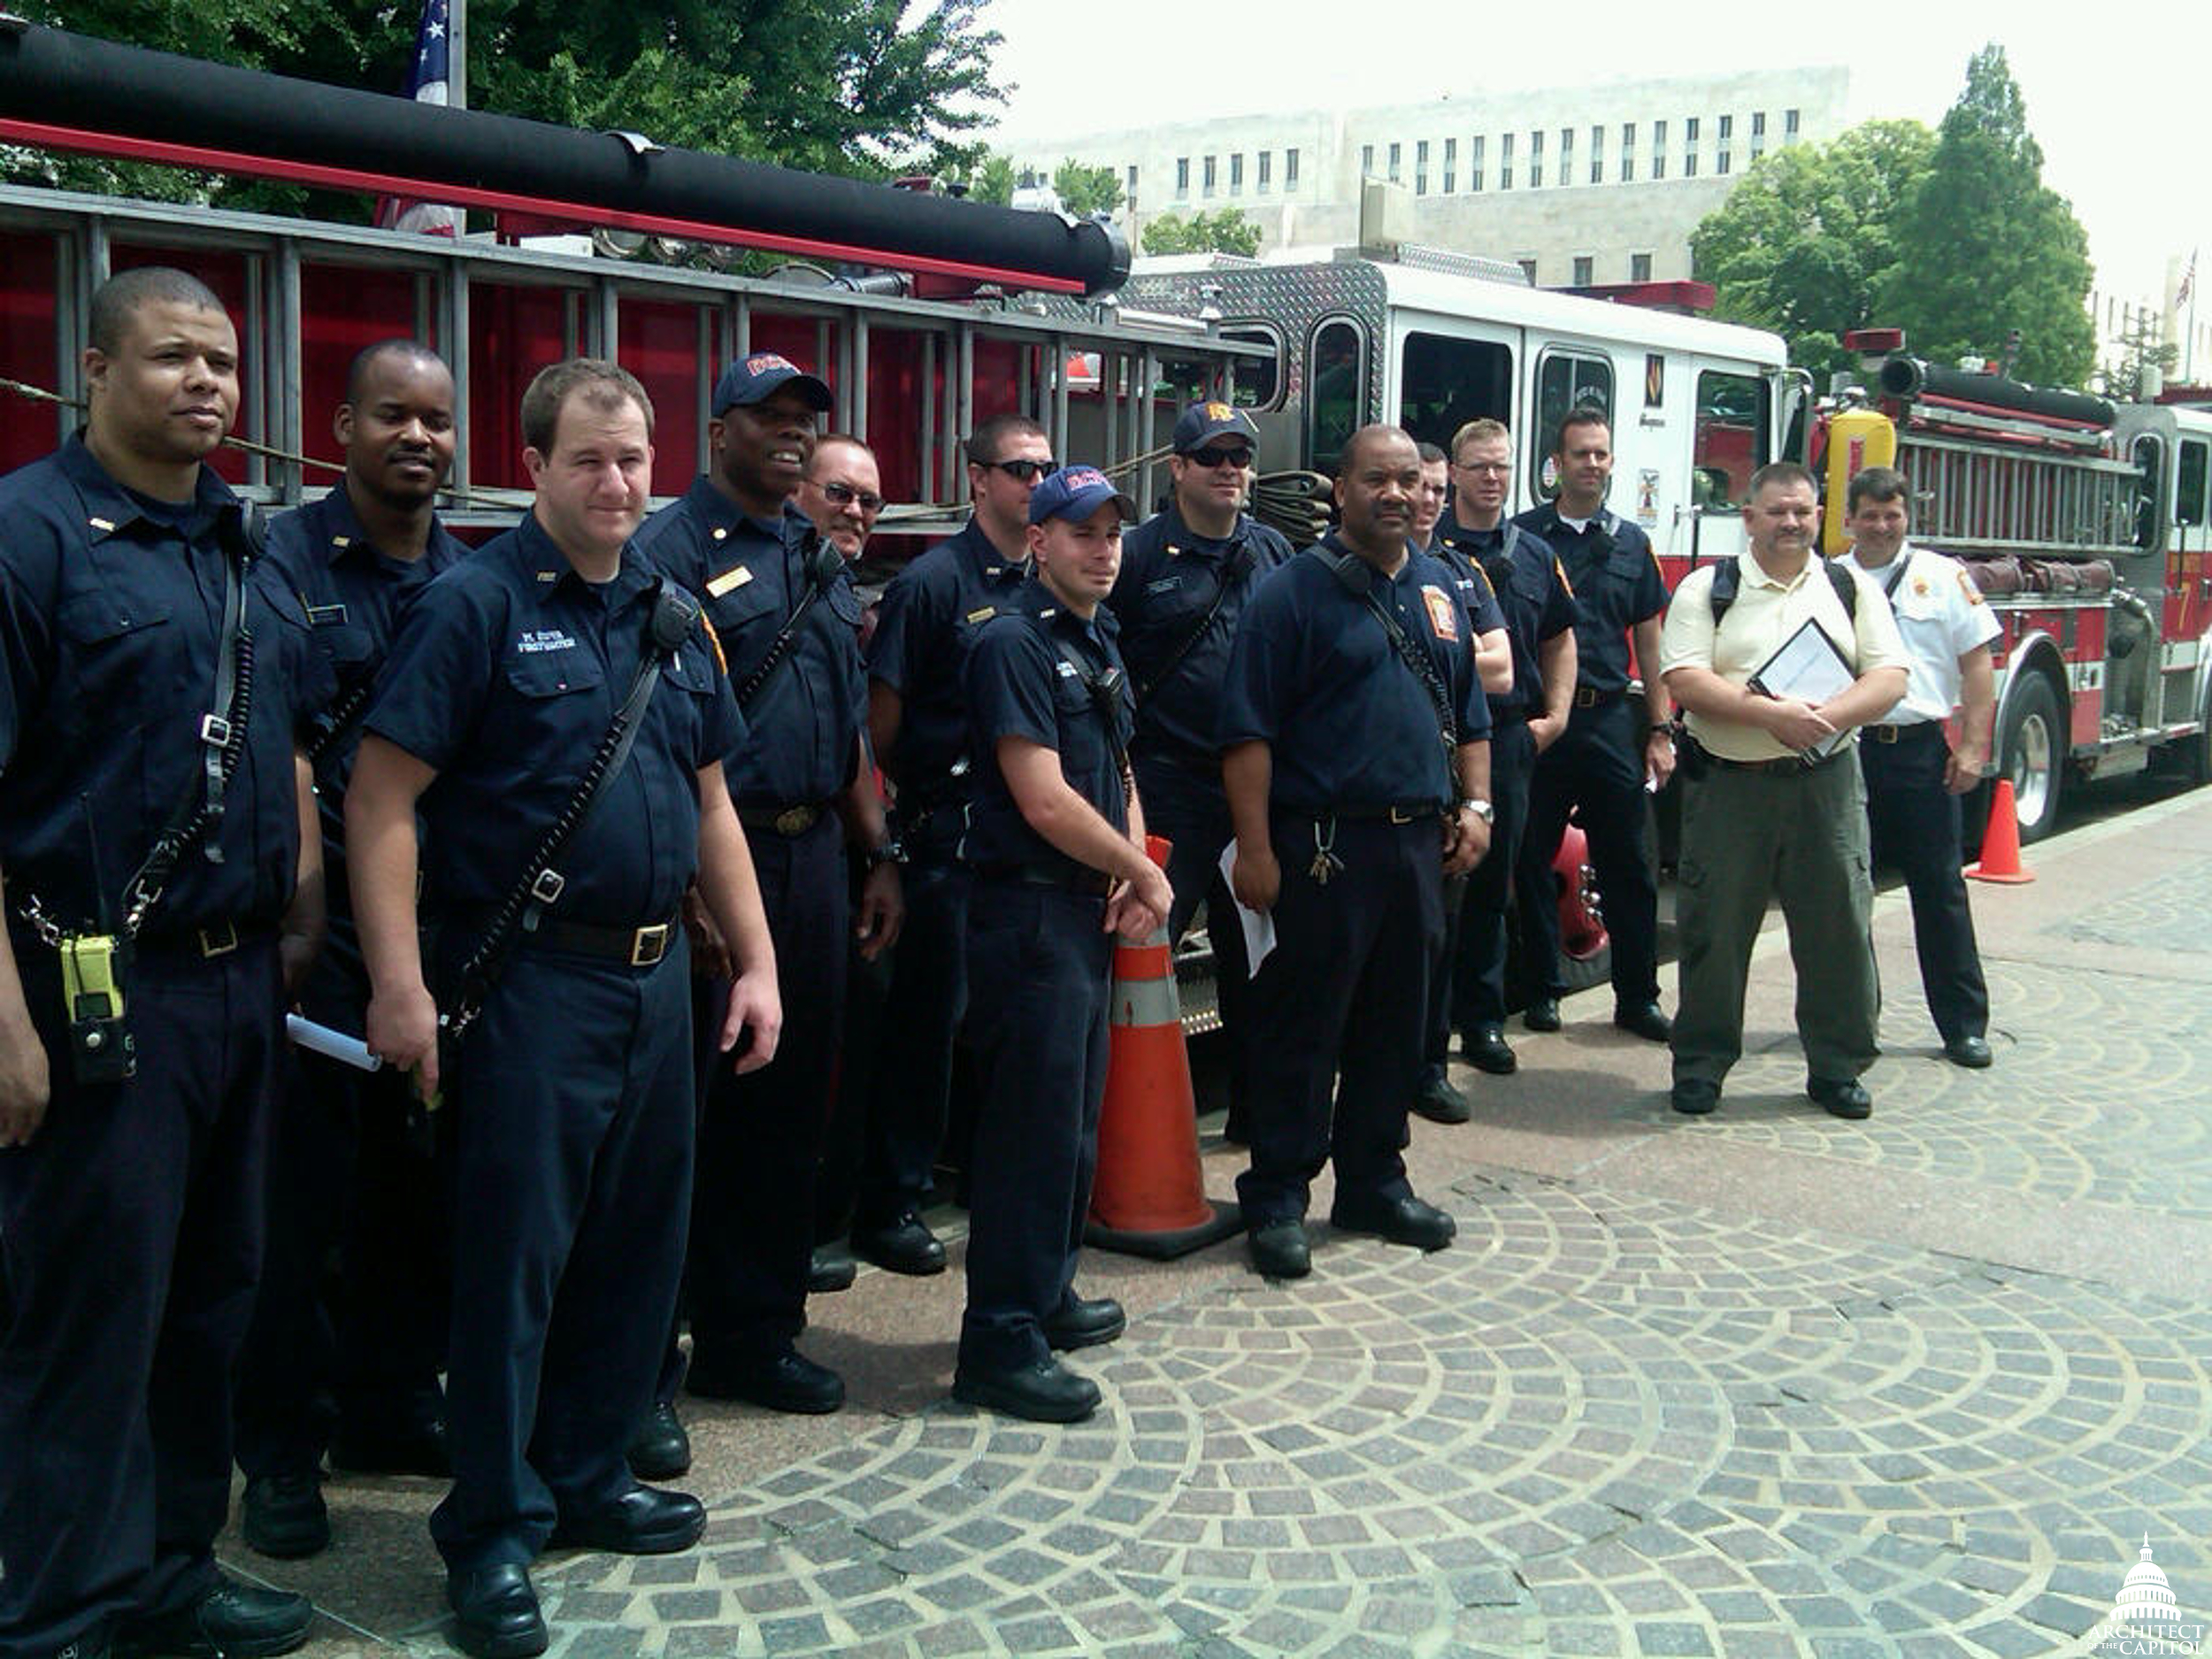 Photo from 2011 of DC firefighters getting ready to start familiarization tours of the Library of Congress Buildings.